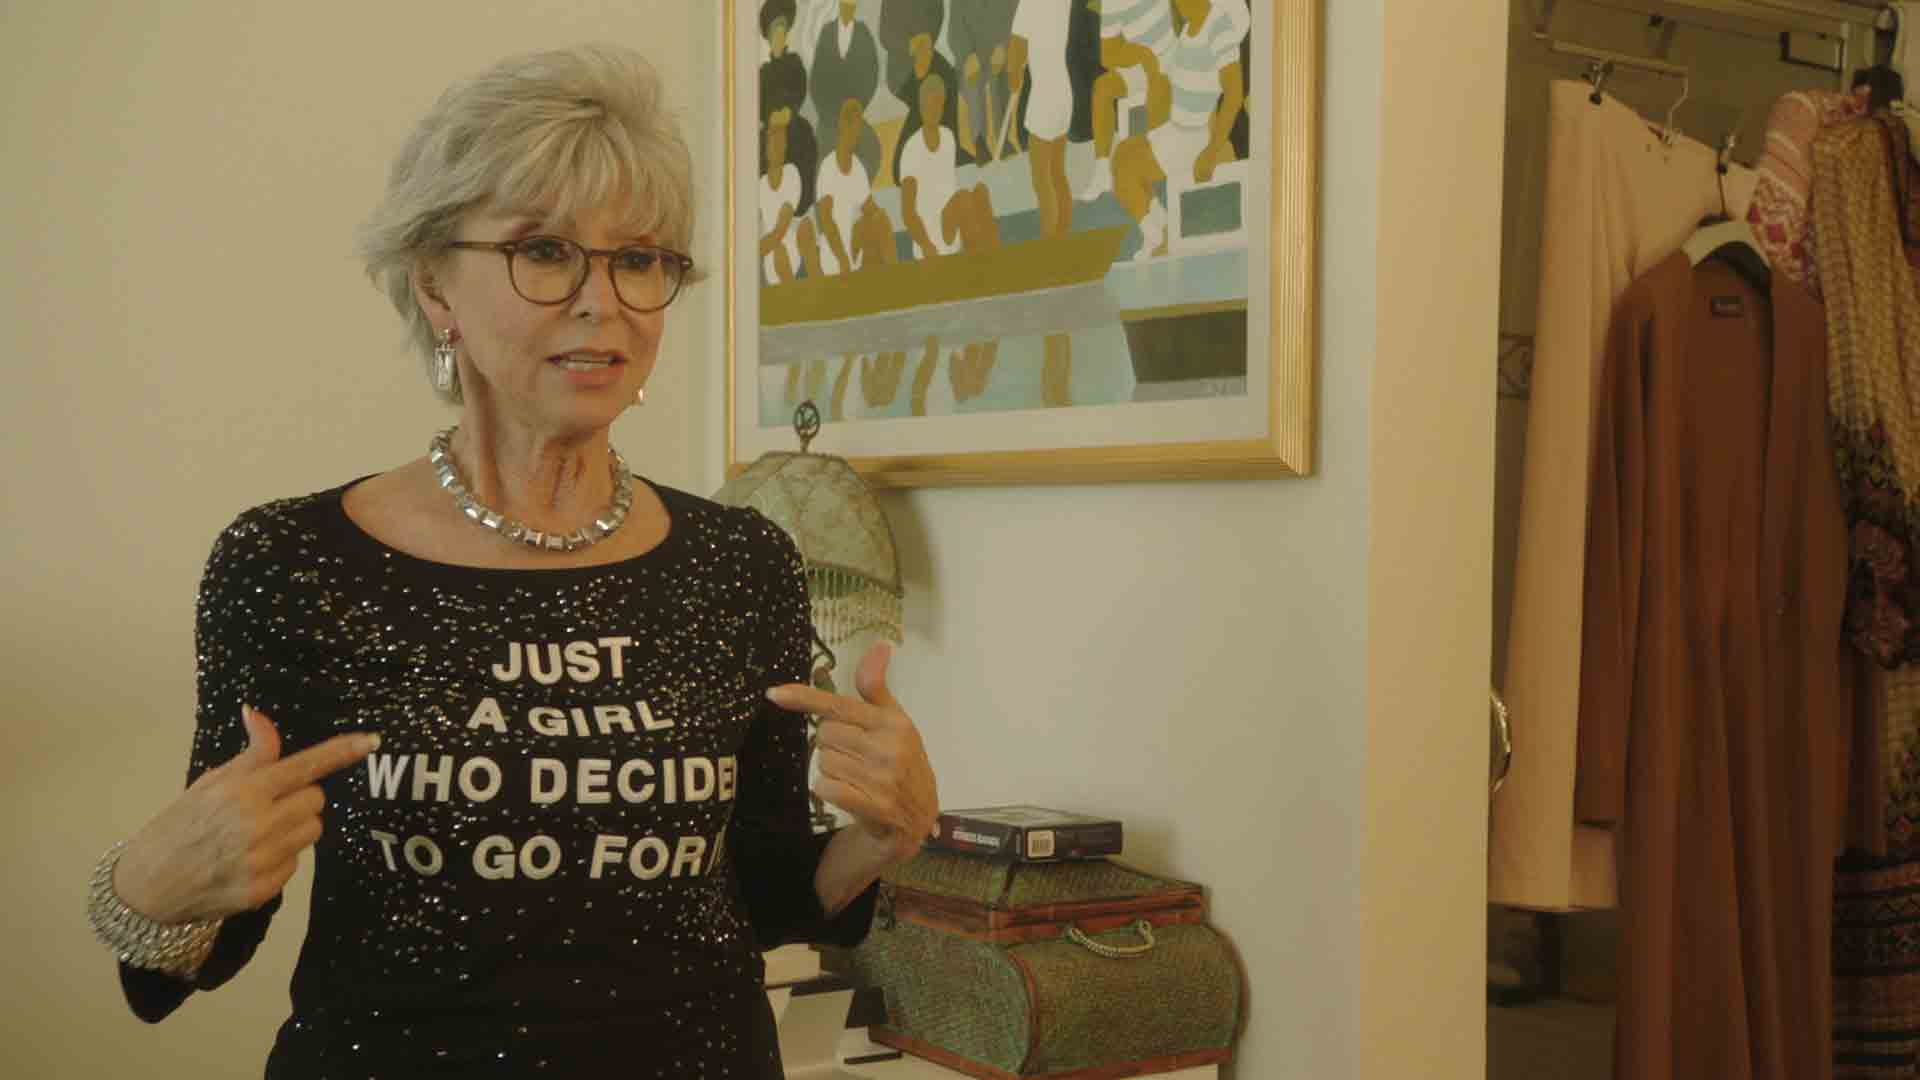 AMERICAN MASTERS : Rita Moreno: Just a Girl Who Decided to Go For It